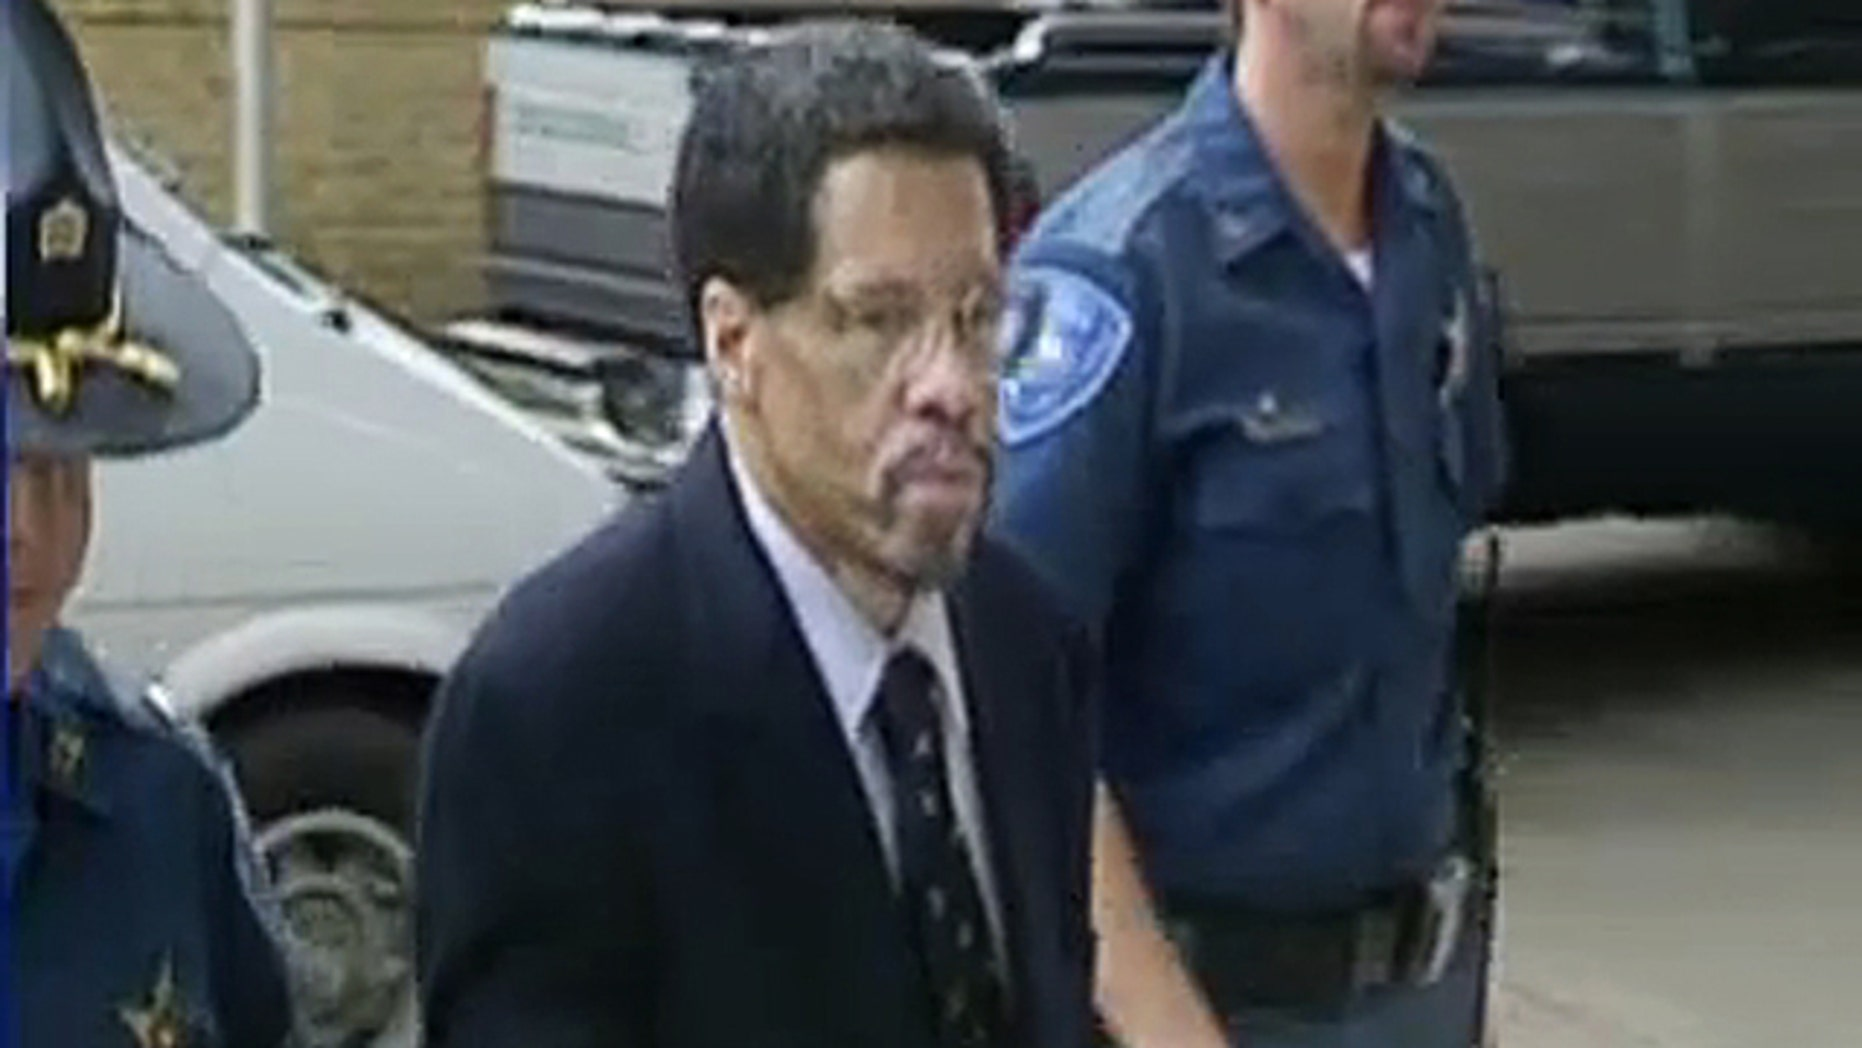 Feb. 12, 2015: In this image made from video and released by WBRZ-TV in Baton Rouge, Albert Woodfox walks into a courthouse in Louisiana. A federal appeals court on Tuesday temporarily blocked the release of Woodfox, the last of the Angola Three inmates who spent decades in isolation after forming a Black Panther Party to protest prison conditions. (WBRZ-TV via AP)